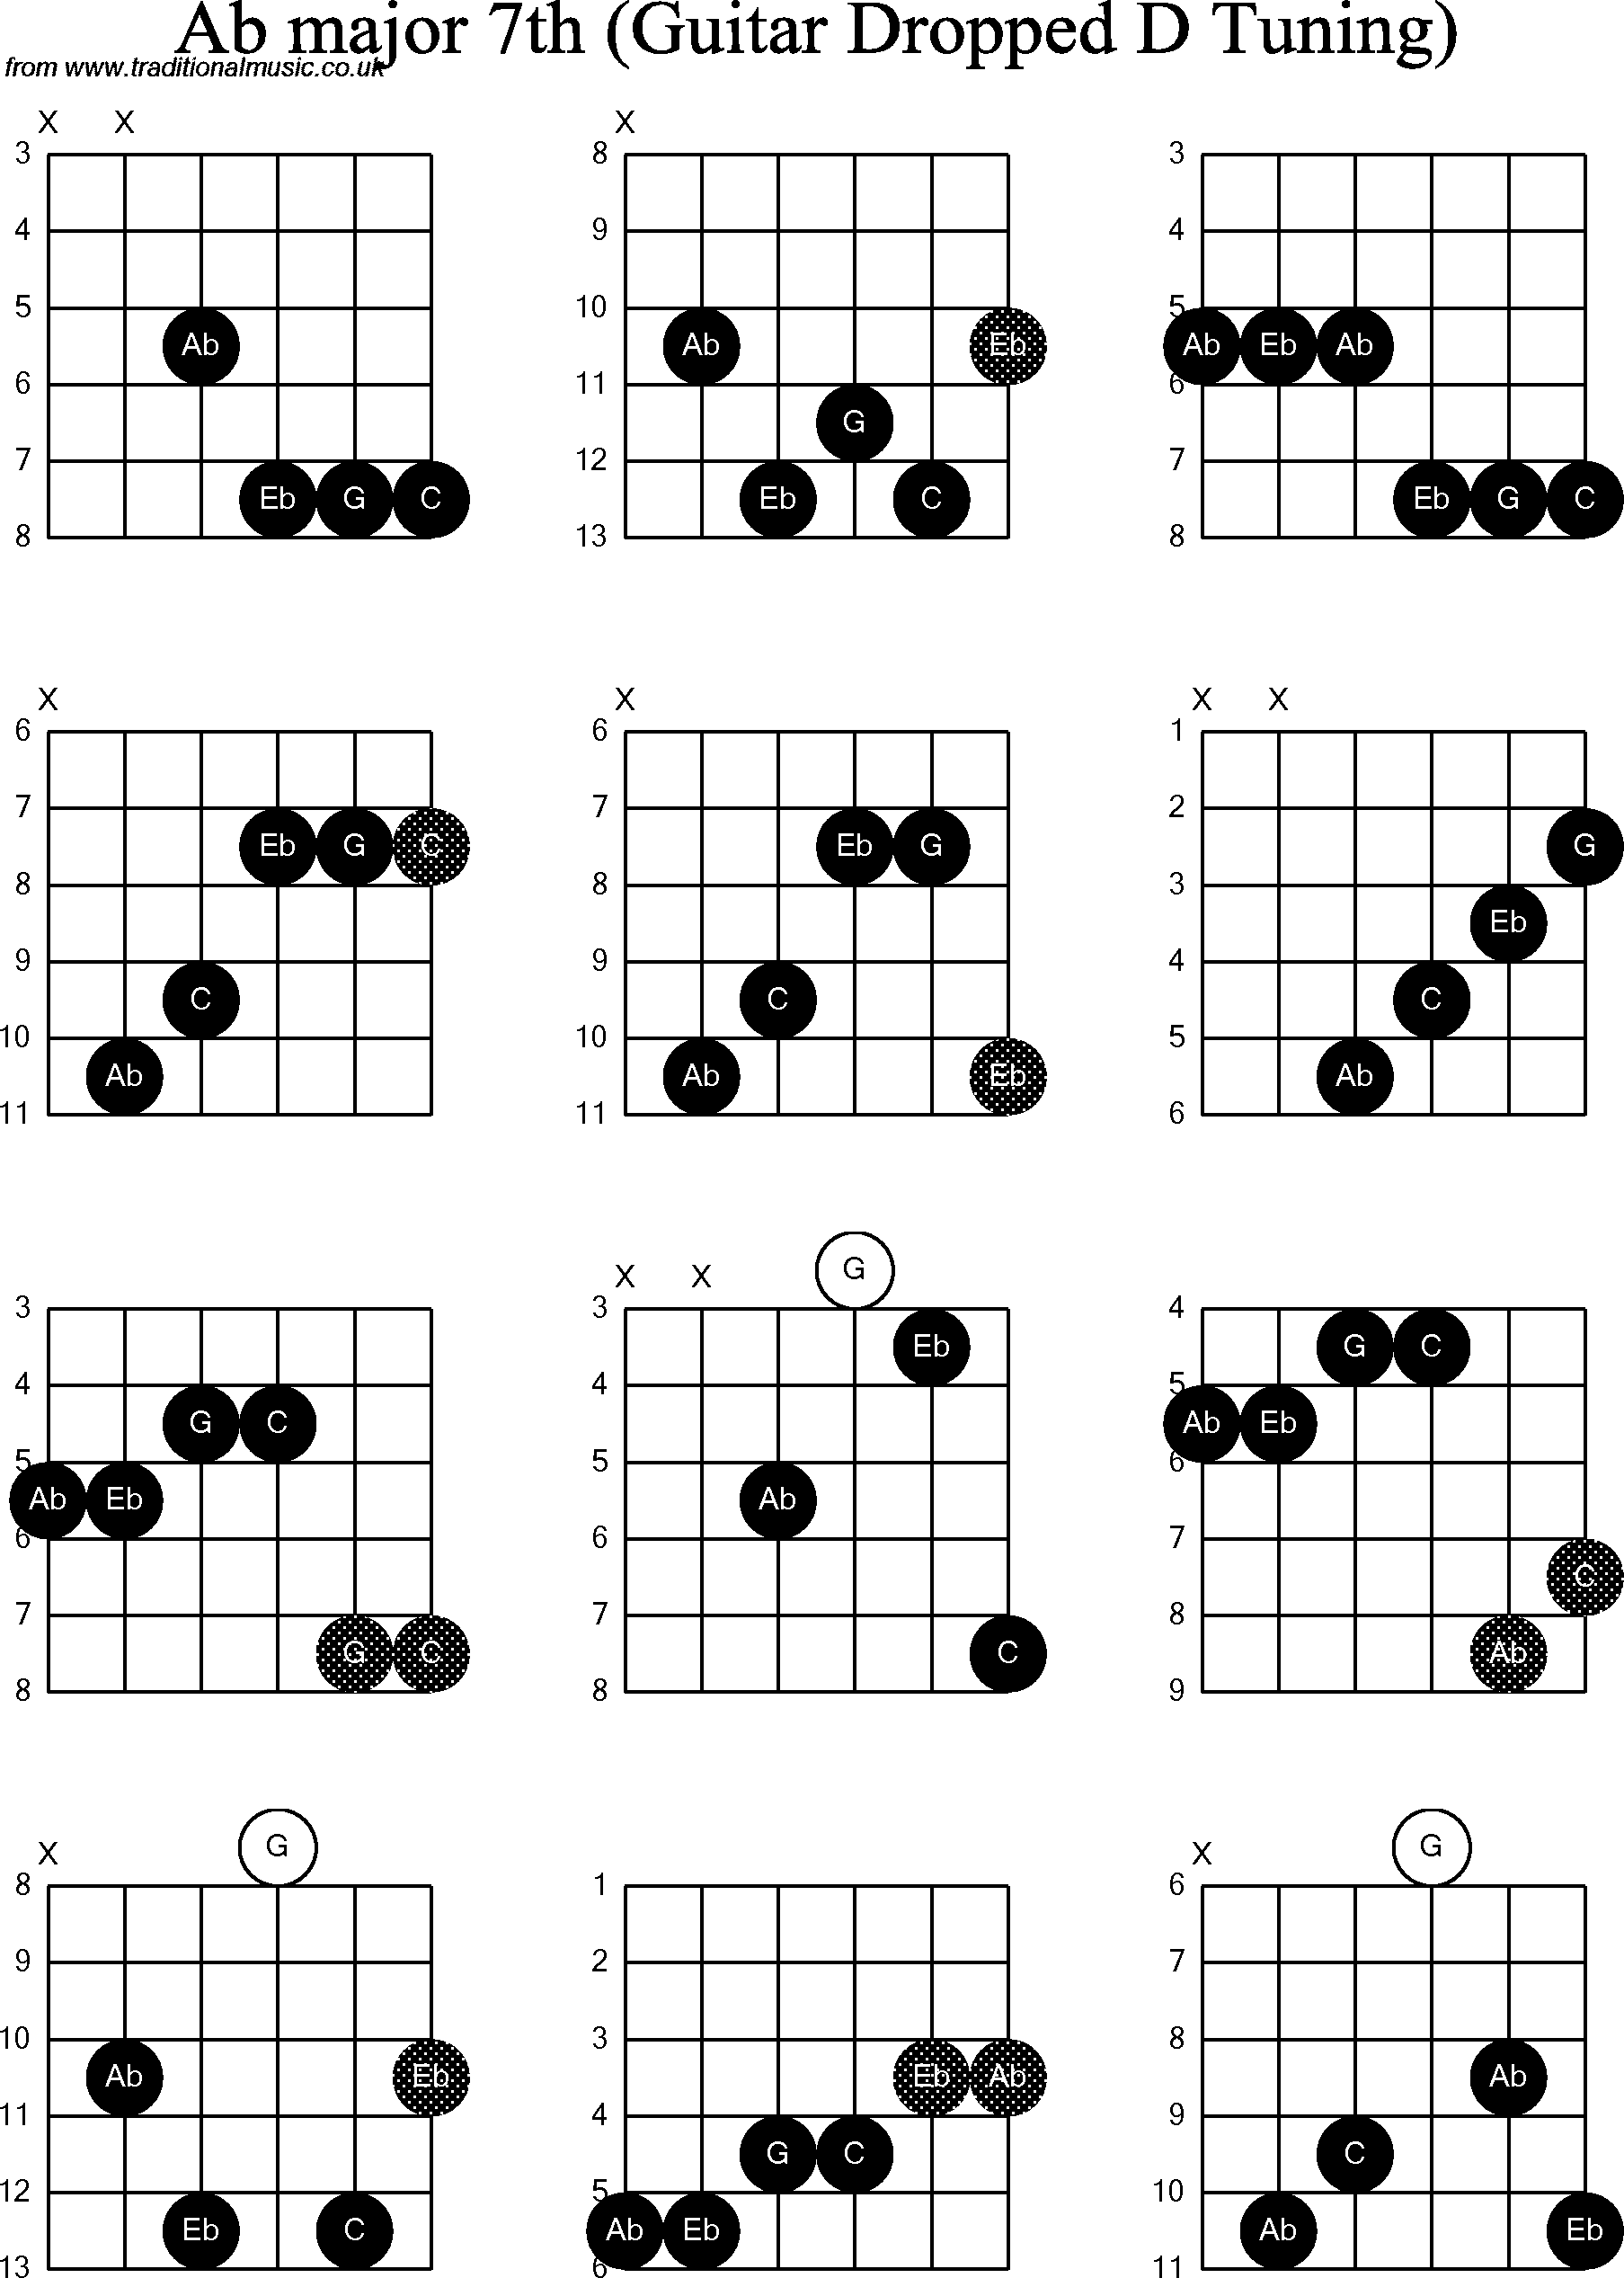 Chord Diagrams For Dropped D Guitardadgbe Ab Major7th